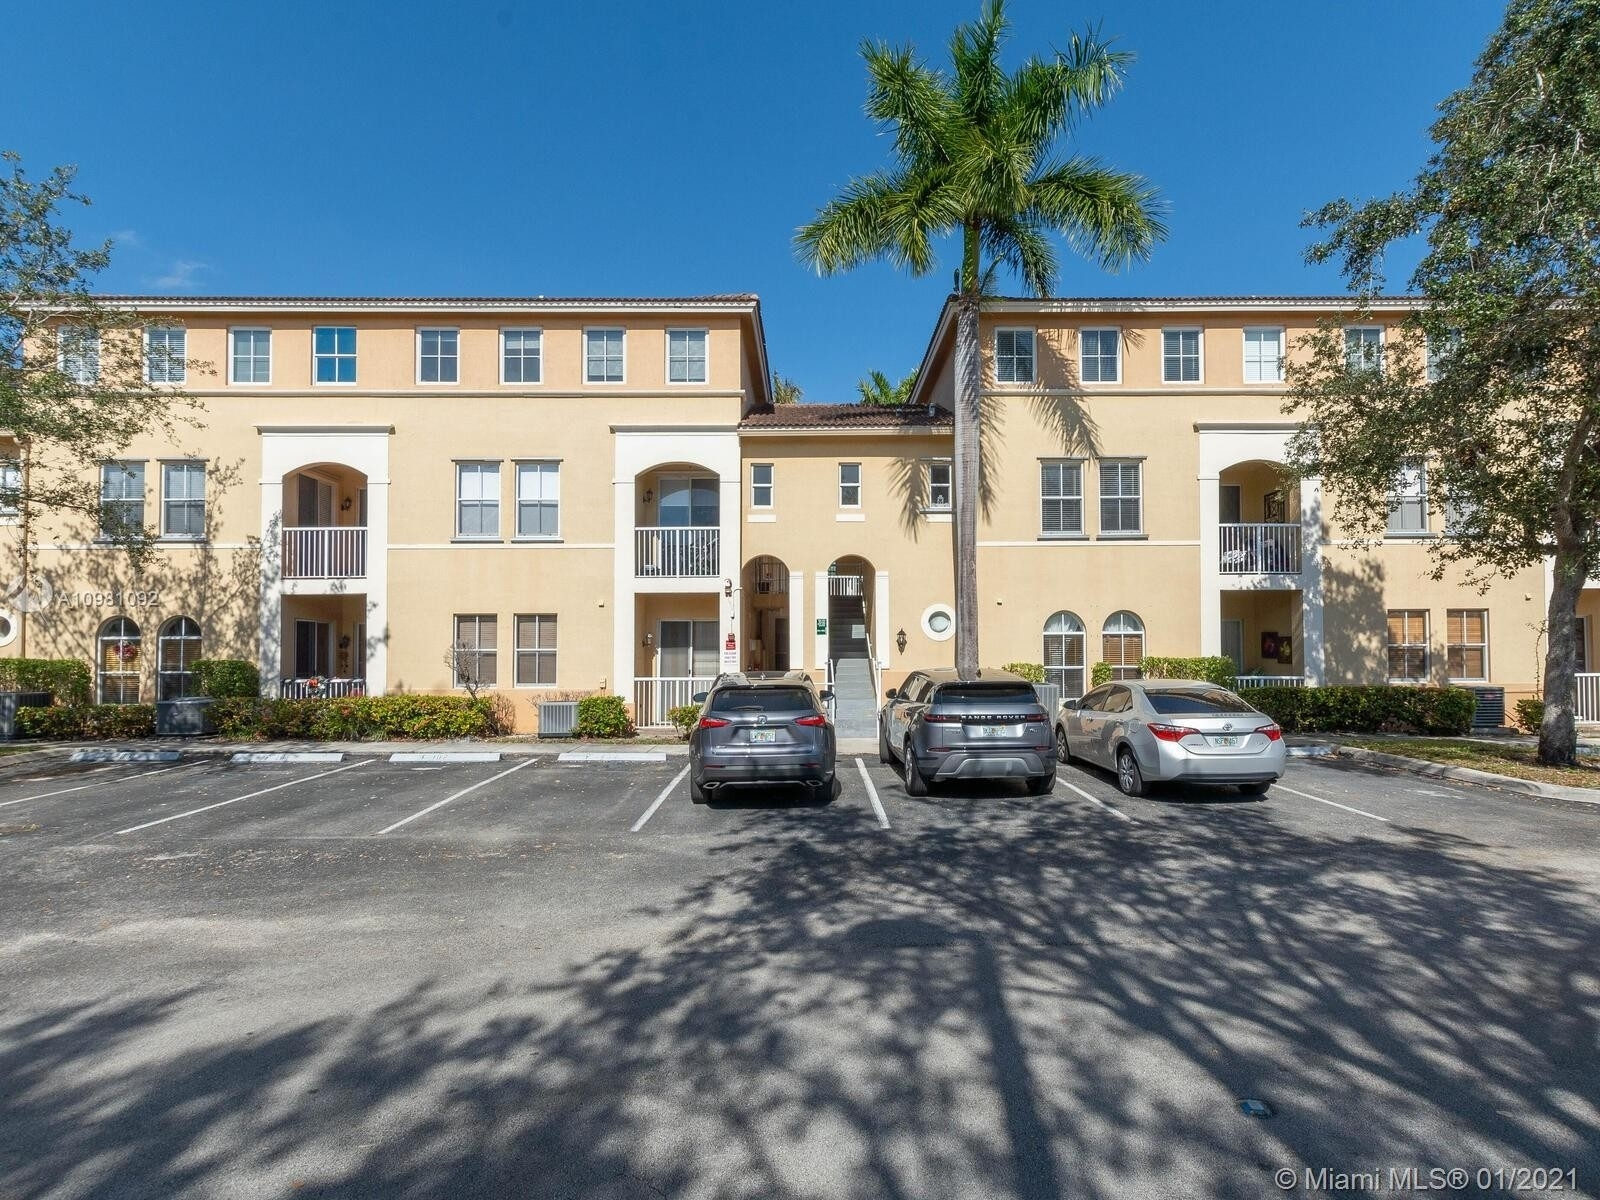 Condominium for Sale at 4351 SW 160th Ave , 102 Country Lakes, Miramar, FL 33027